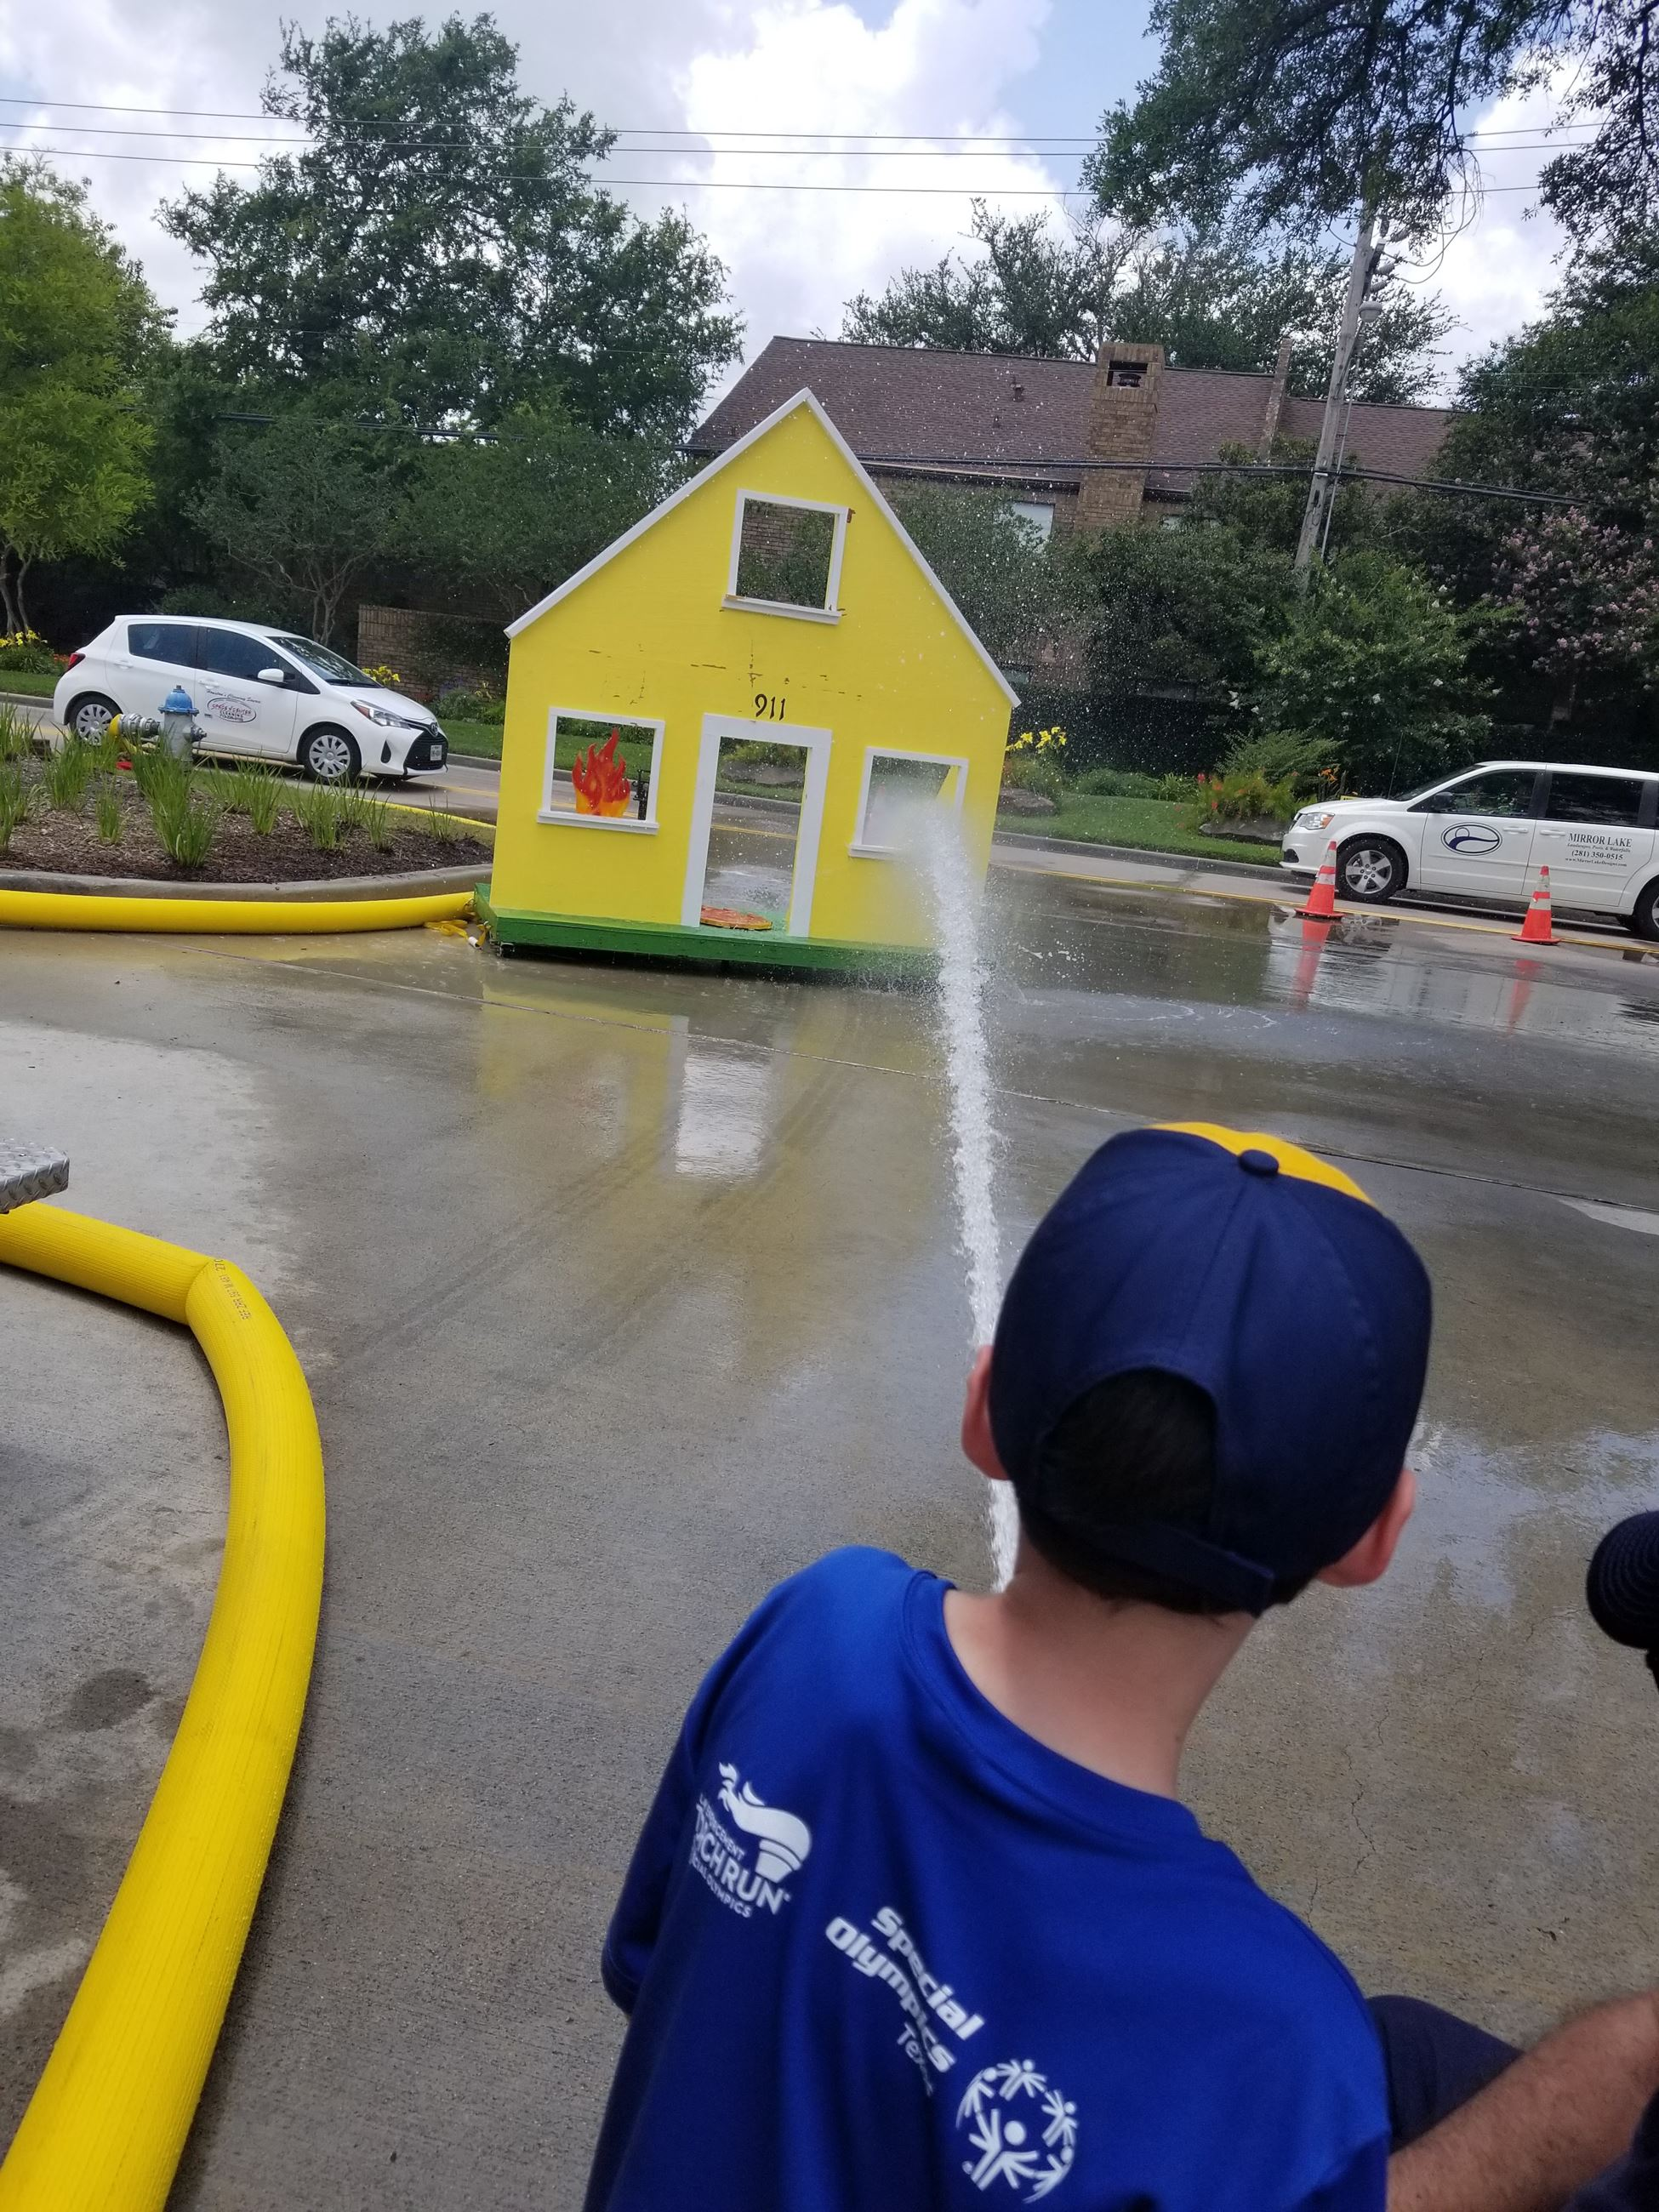 Child Shoots Mock Home with Fireman's Water Hose